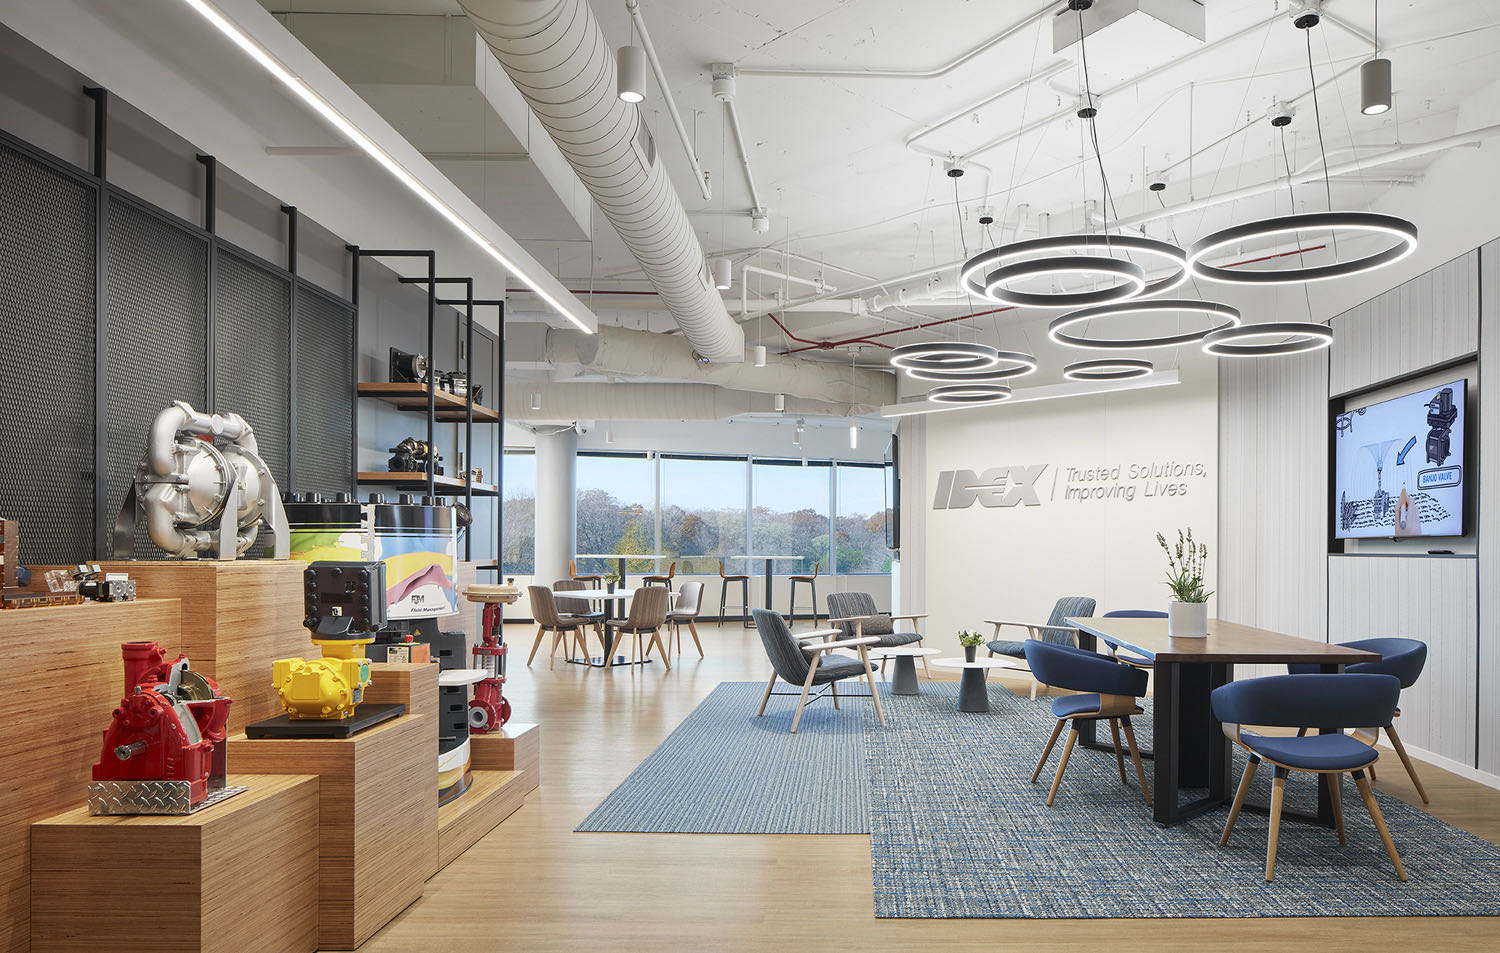 A Look Inside IDEX Corp's New Northbrook Office